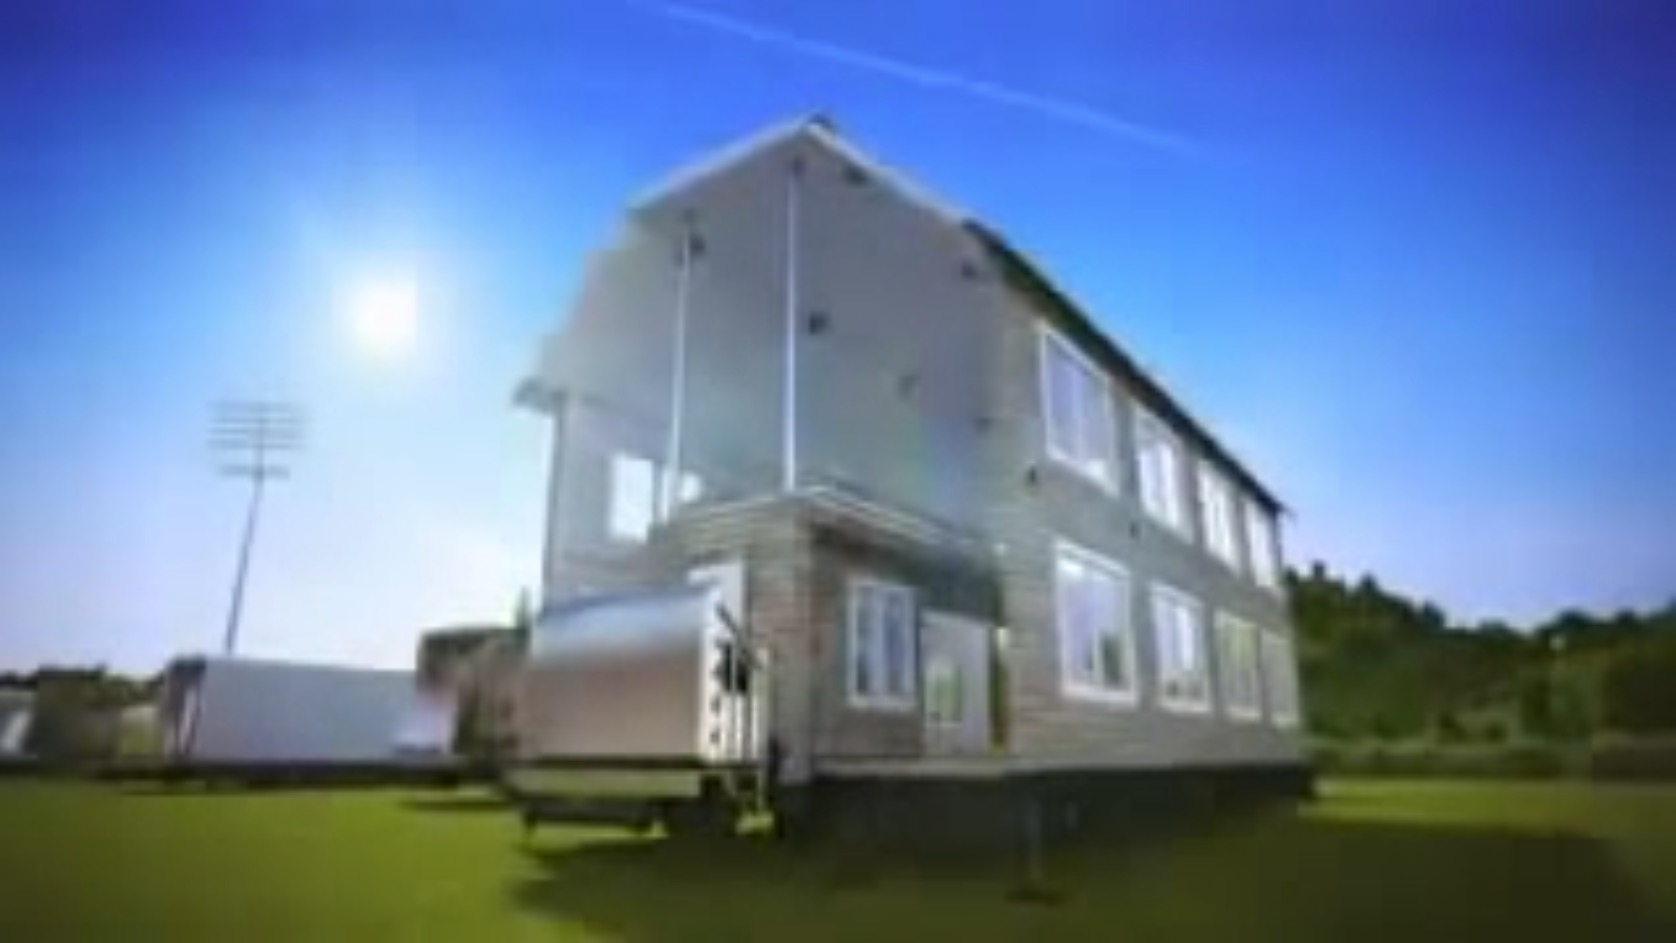 Best Kitchen Gallery: Shipping Containers Fold Out Into Two Story Houses In This Highly of Shipping Container Mobile Home  on rachelxblog.com